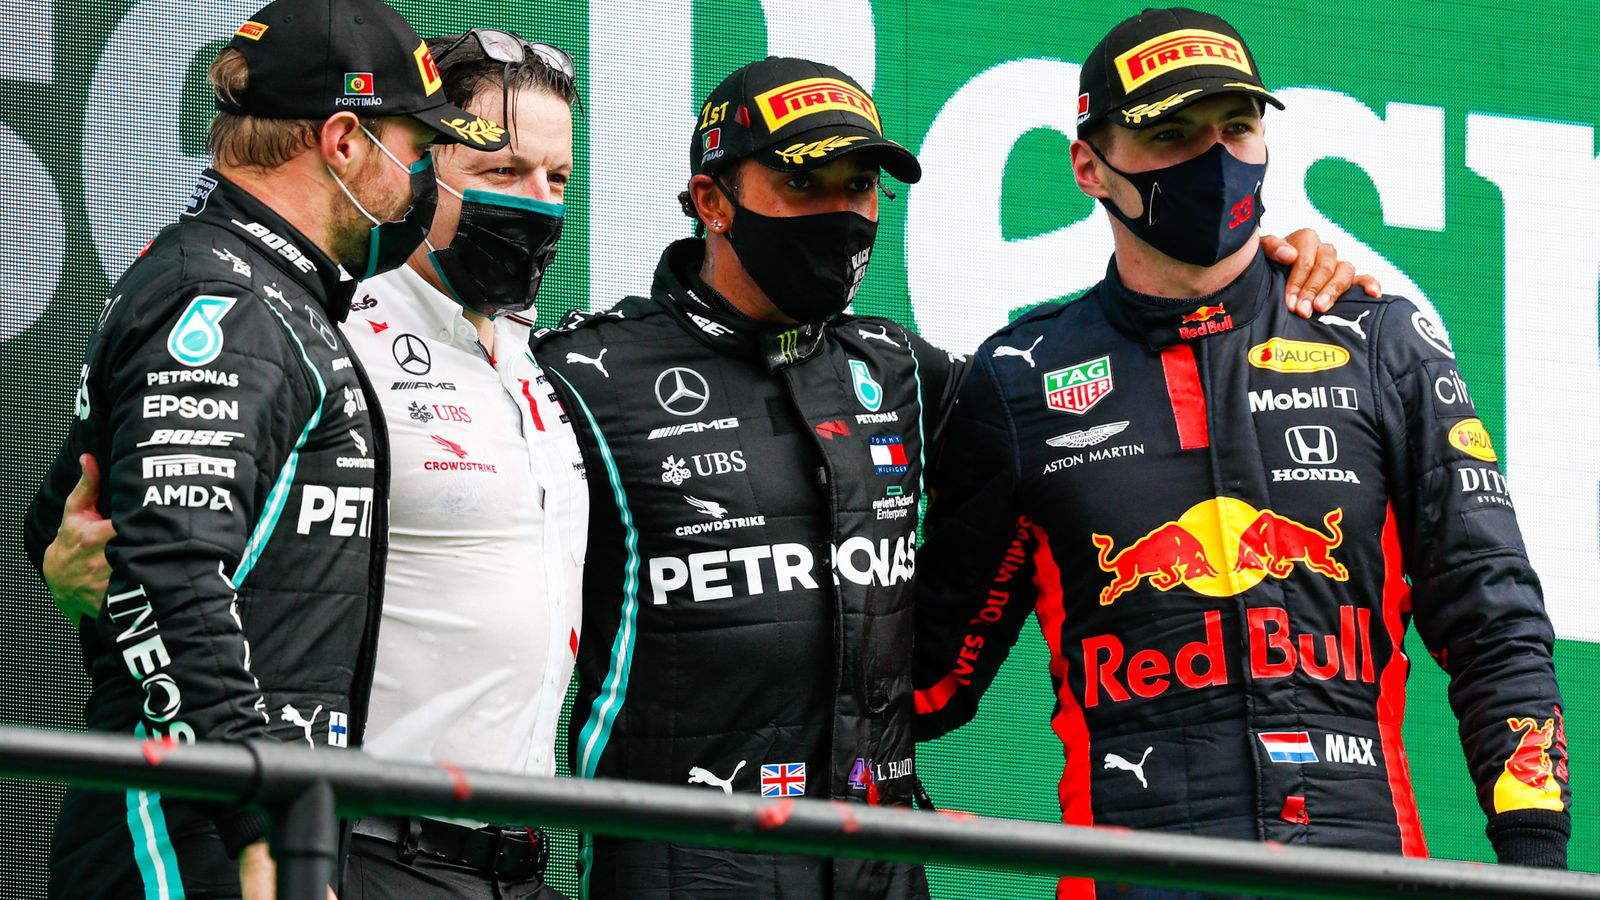 The F1 calendar for 2021 has been confirmed as the GP of Portugal with a rubber stamp for the third race of the new season